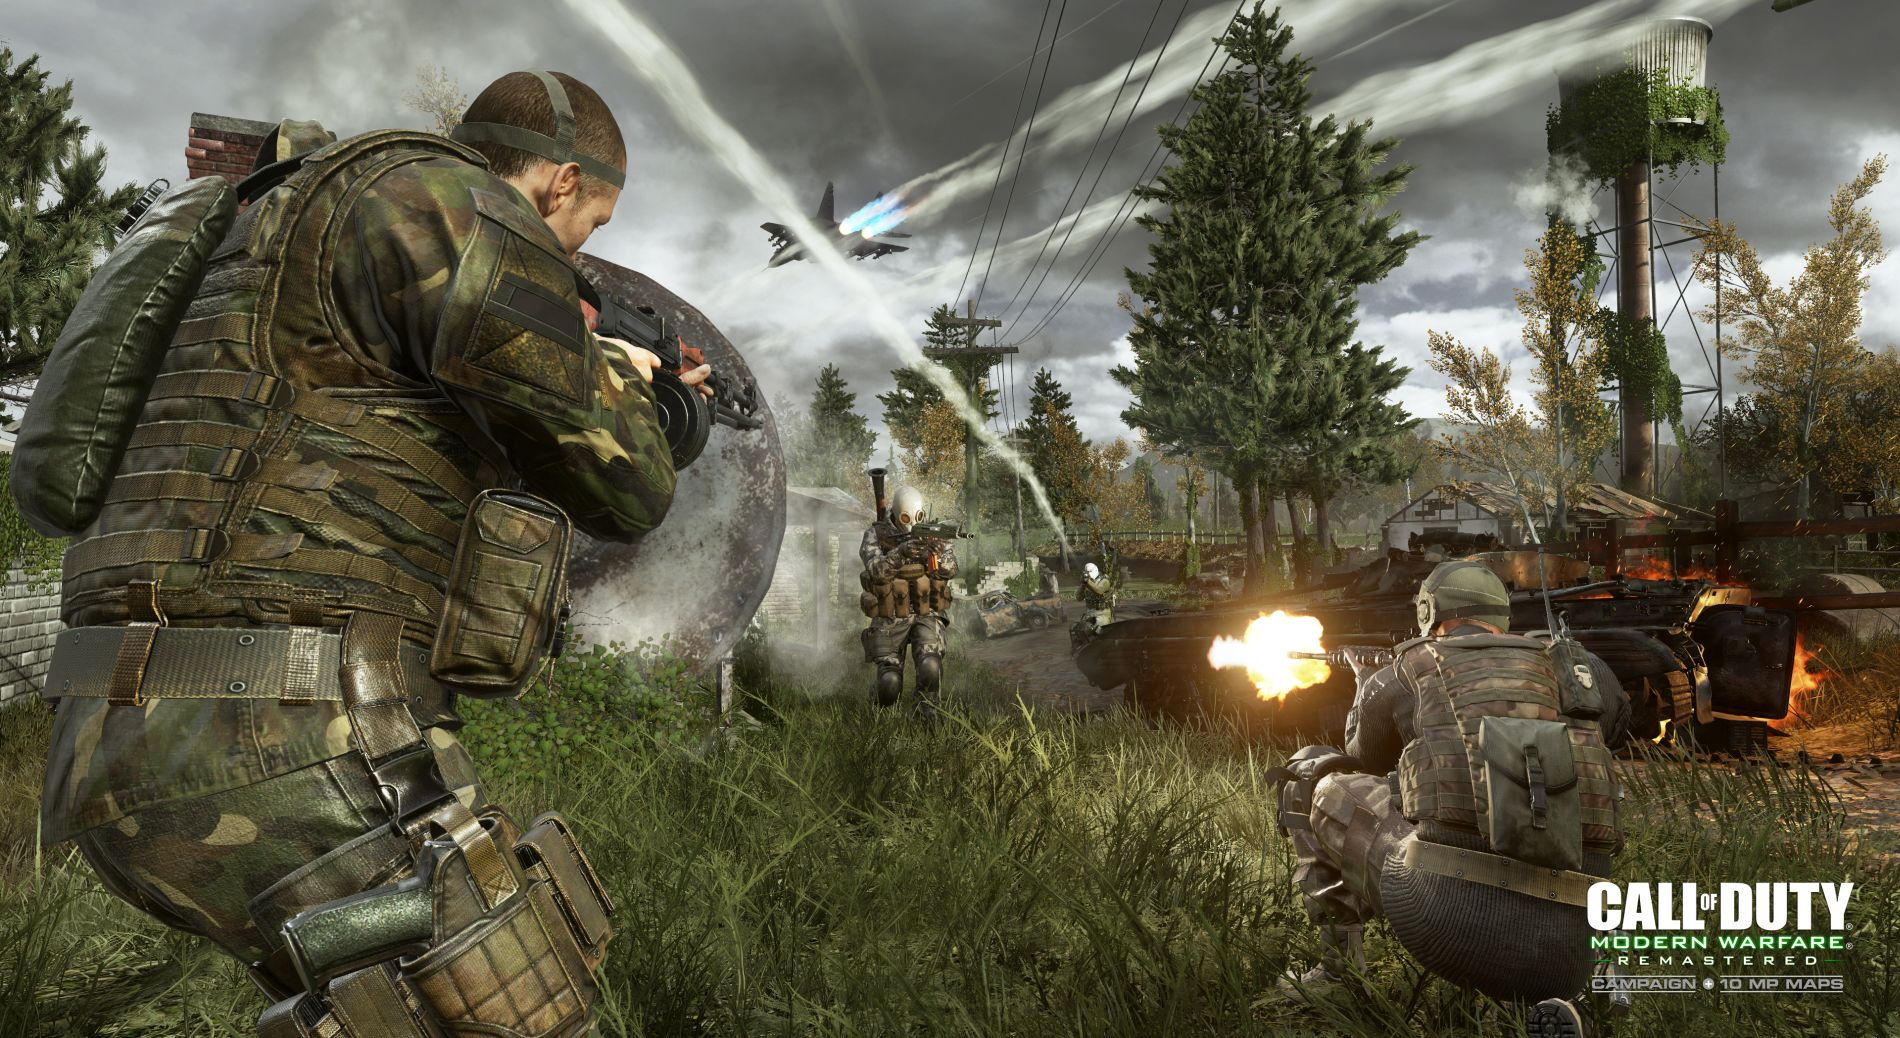 helicopter game online play free with Call Of Duty 4 Modern Warfare Remastered Contains All 16 Original Multiplayer Maps on 304930 as well Unturned further Ocean City Racing Pc Game Free Download also Id578448682 together with Blitz Brigade.